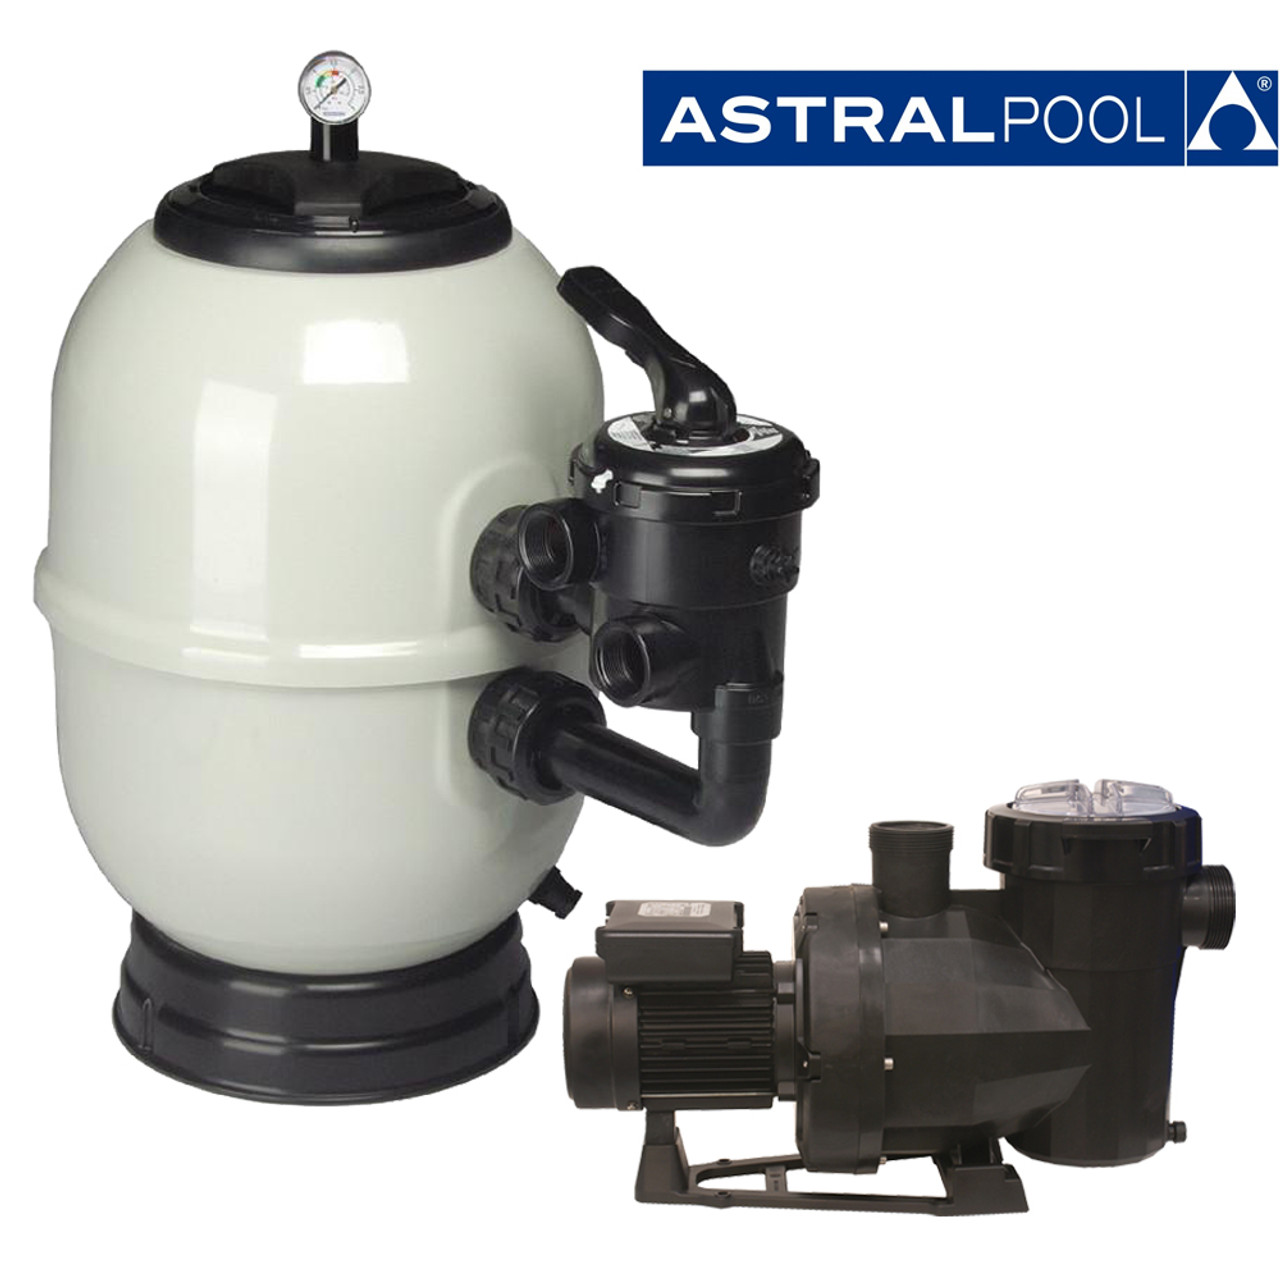 Astral Aster side mount filter with Astral Victoria Plus Next Generation swimming pool pump.